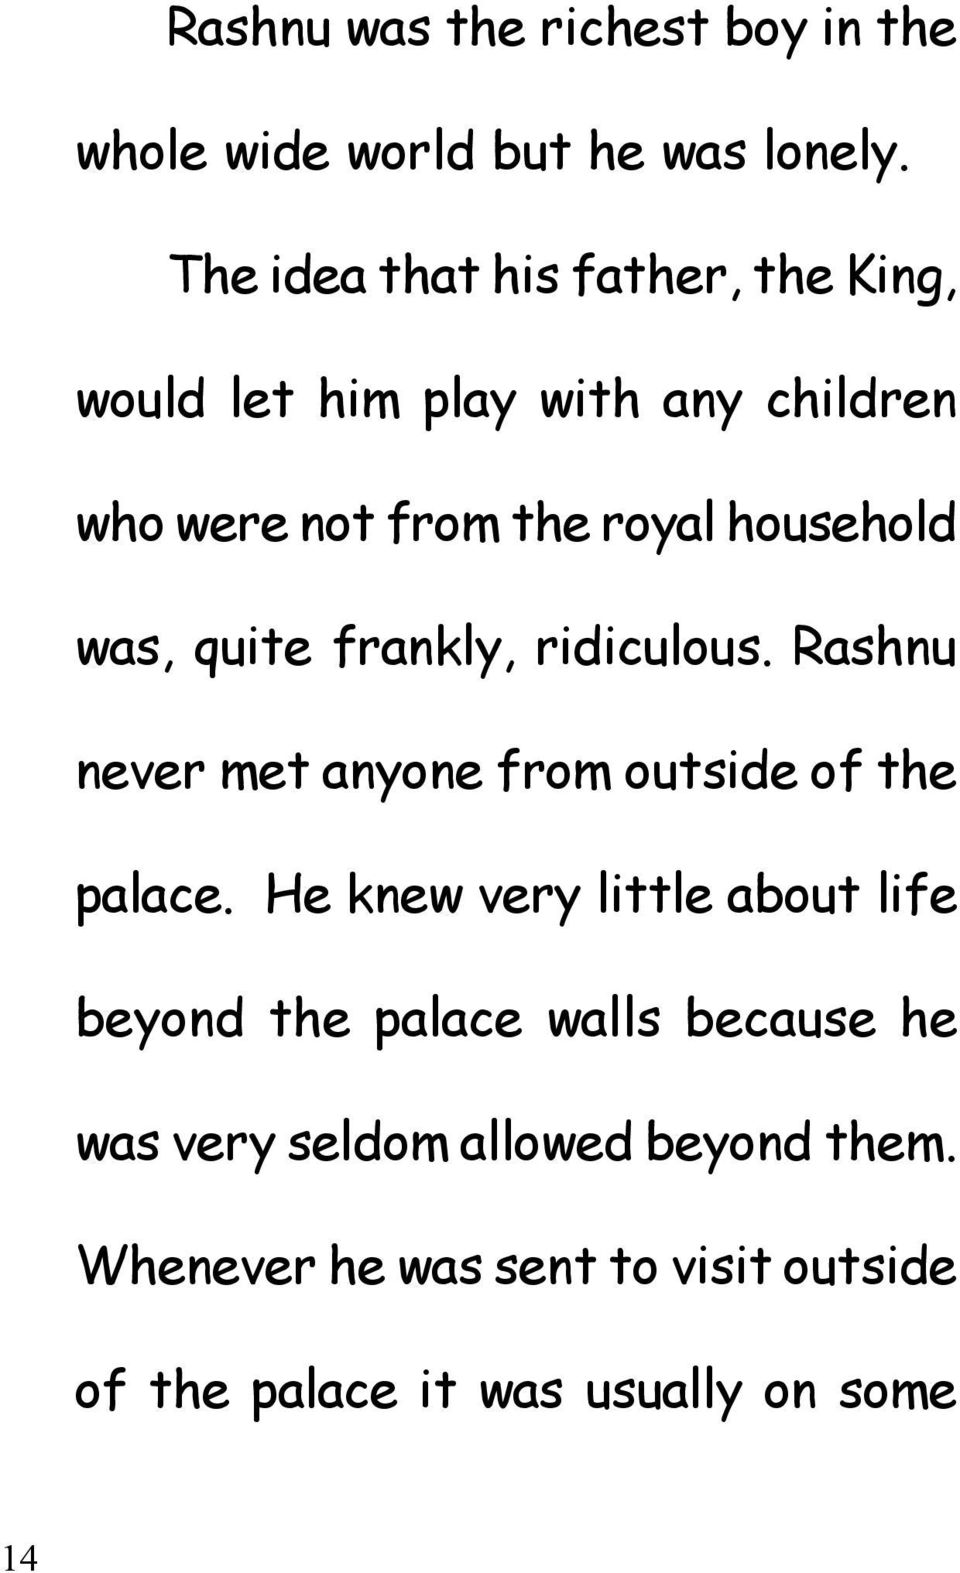 was, quite frankly, ridiculous. Rashnu never met anyone from outside of the palace.